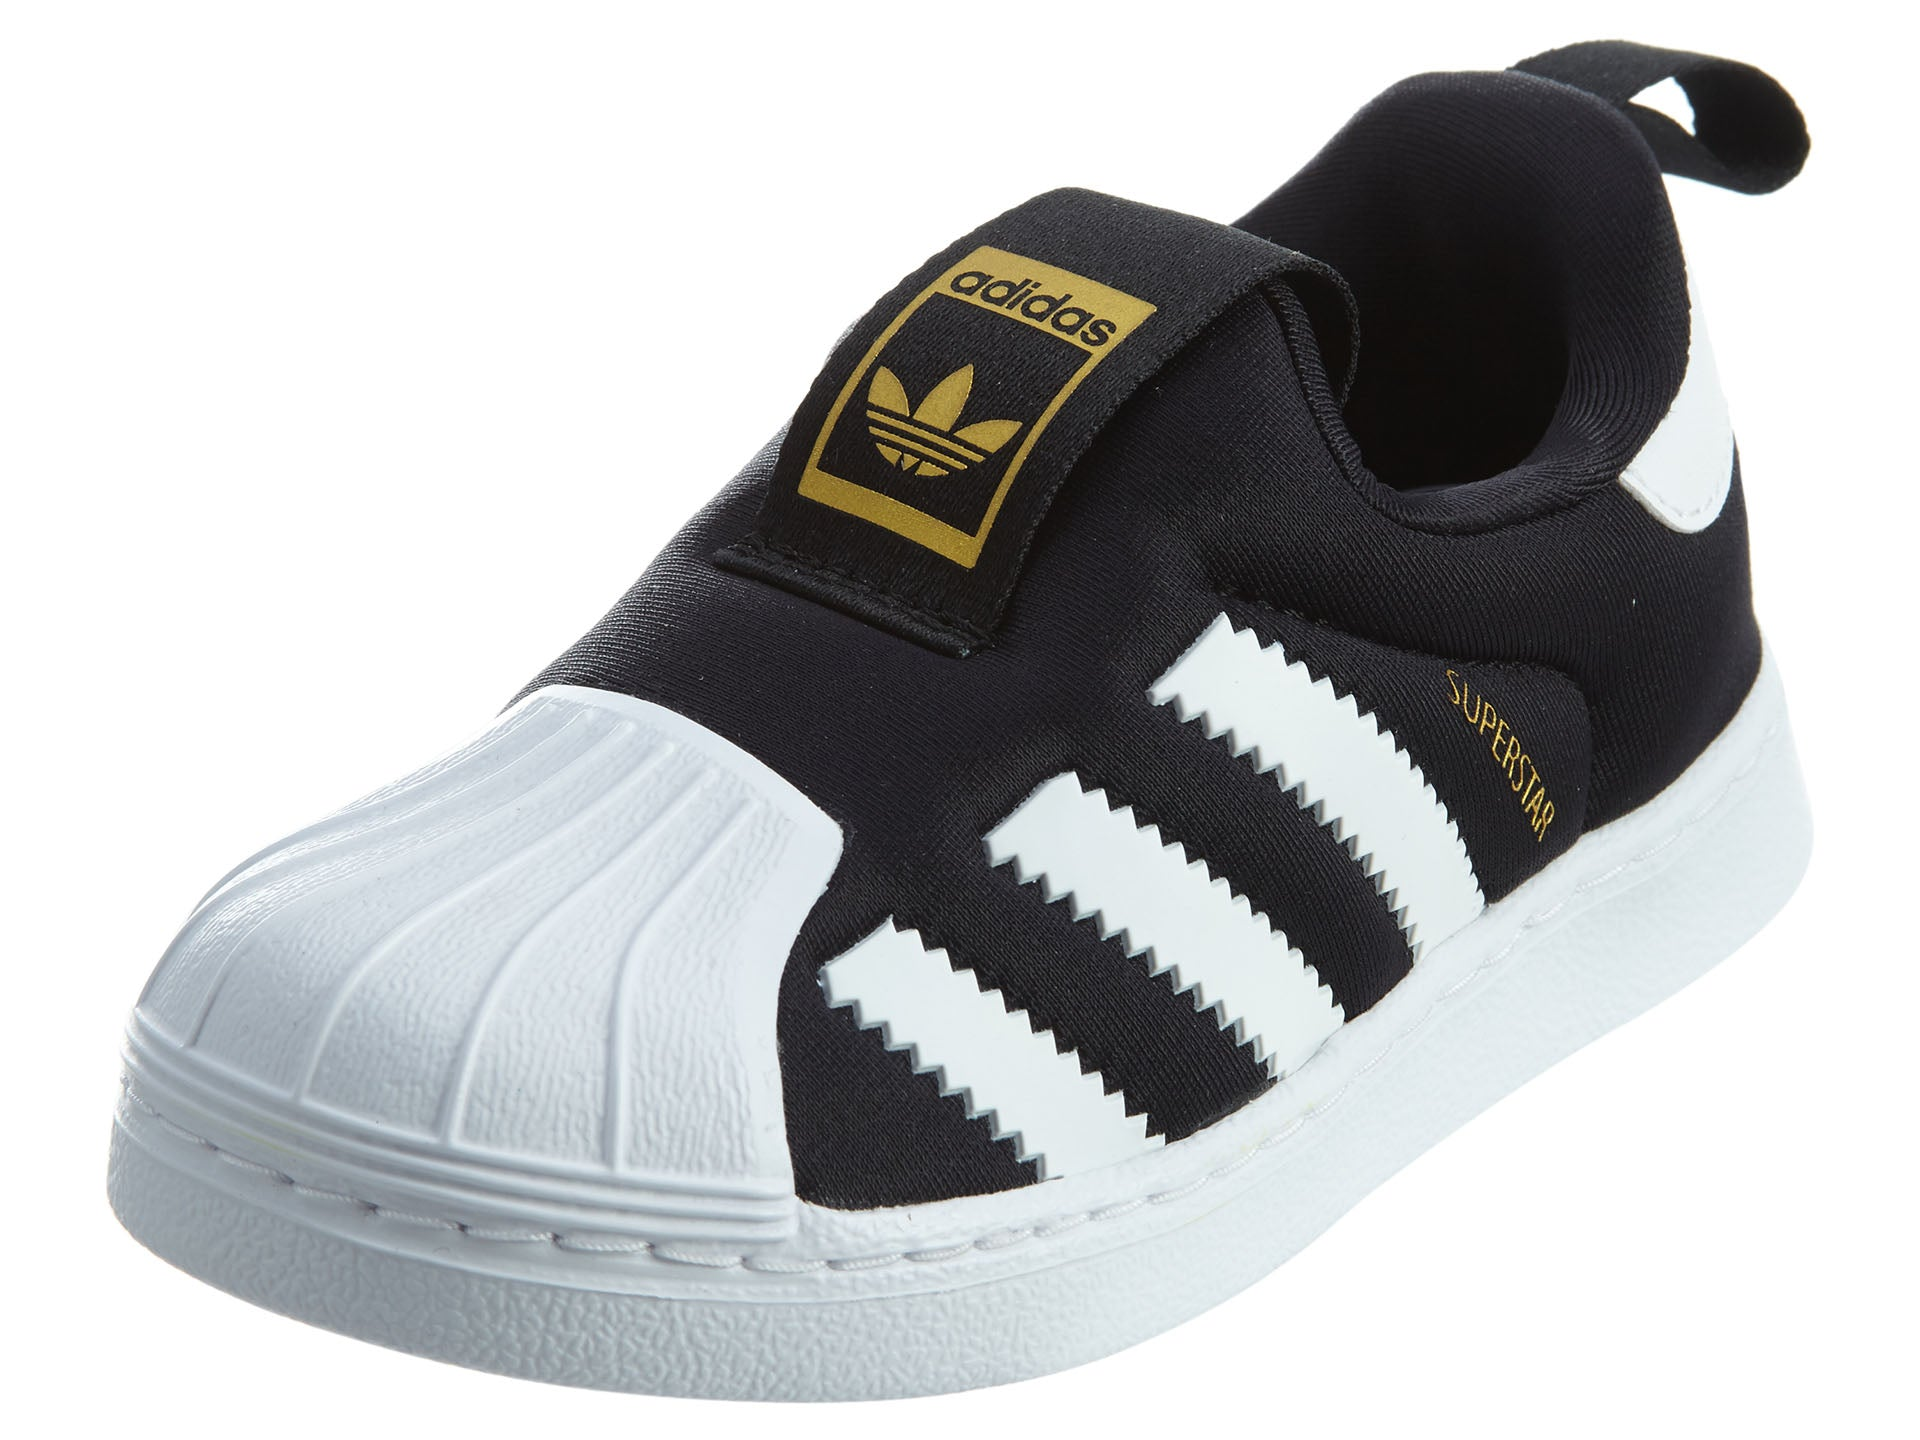 f77e958051f4 Adidas Superstar 360 I Toddlers Style   S82711 – talkmoney730